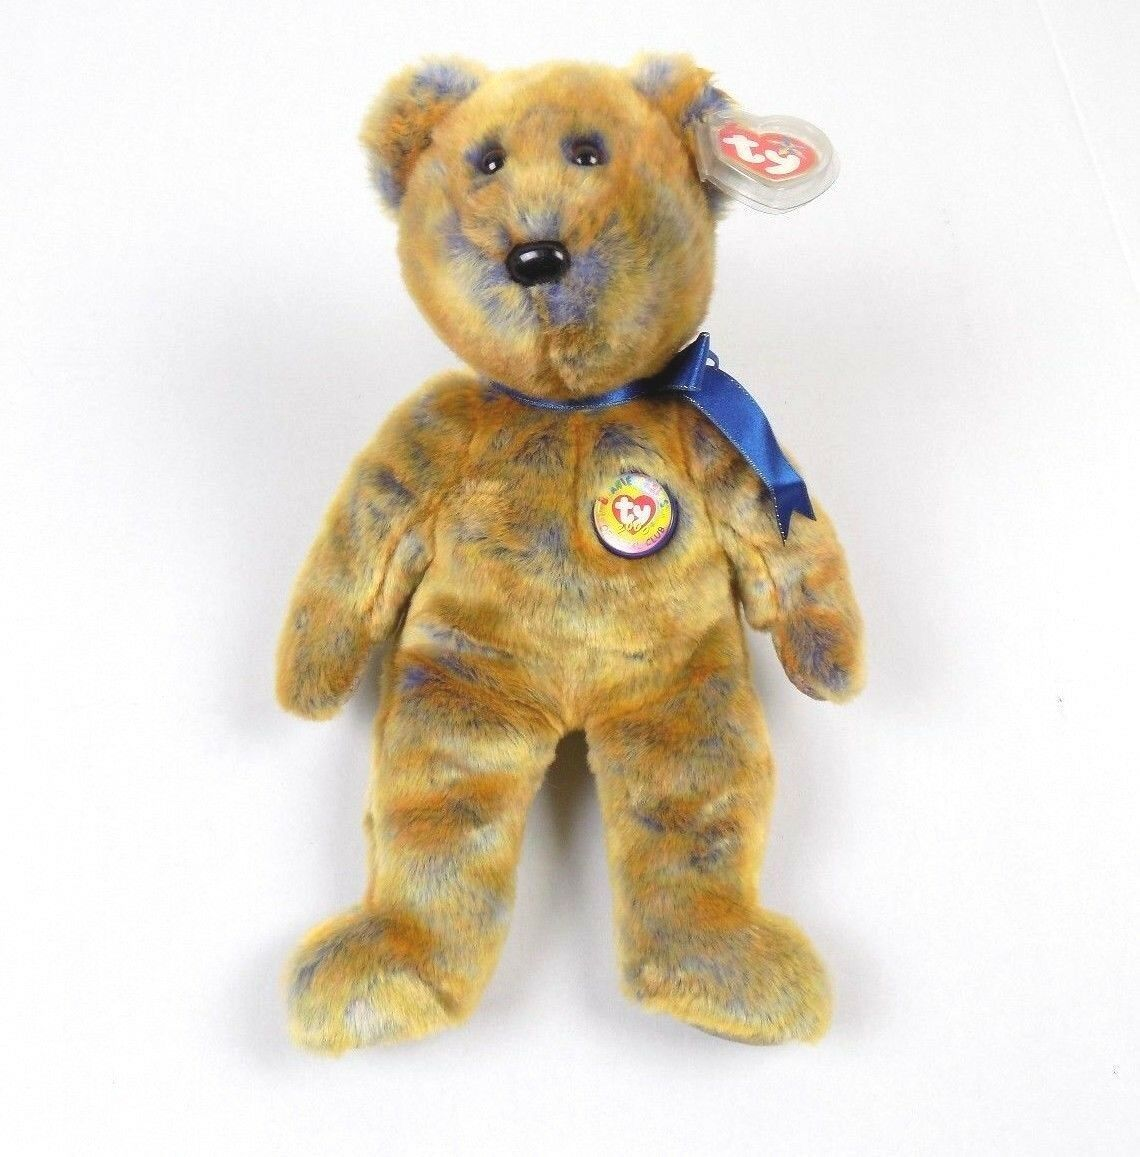 TY Beanie Baby Clubby 3 the Bear Plush collectible toy DOB 06 30 2000 -   8.59 733786a99290